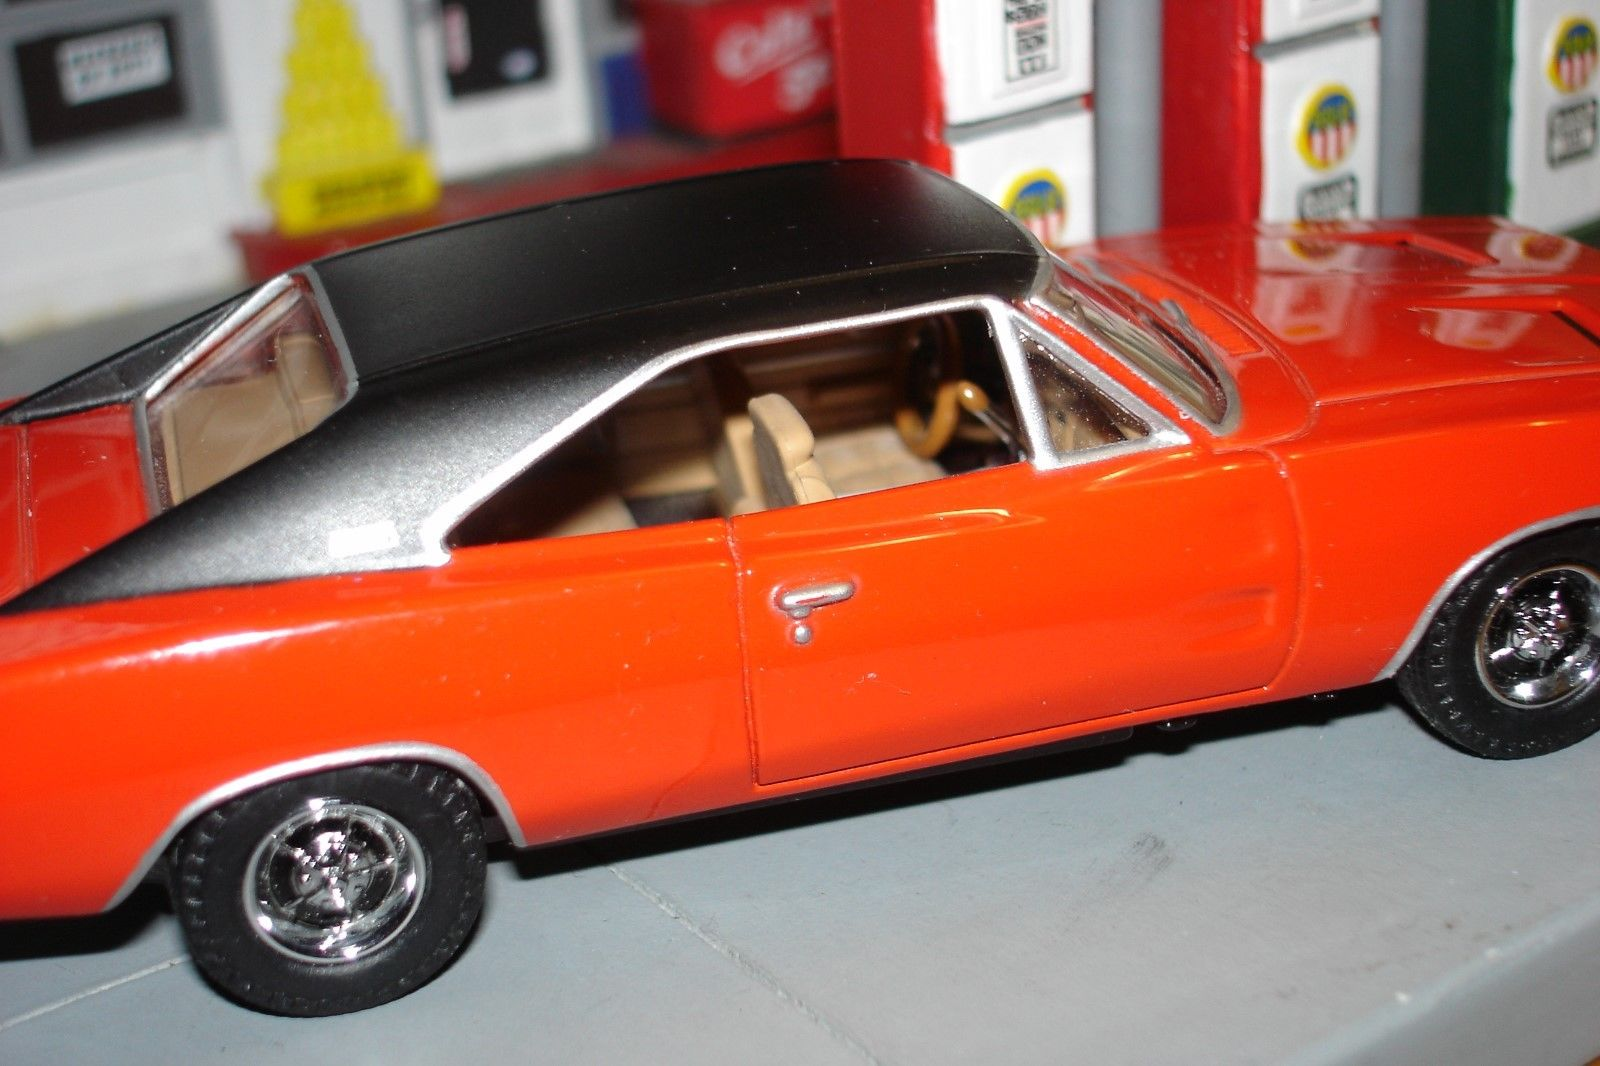 2017 Dodge Charger Rt White >> Awesome 1969 Dodge Charger R/T 1:43, O Scale Matchbox 2018 | 24CarShop